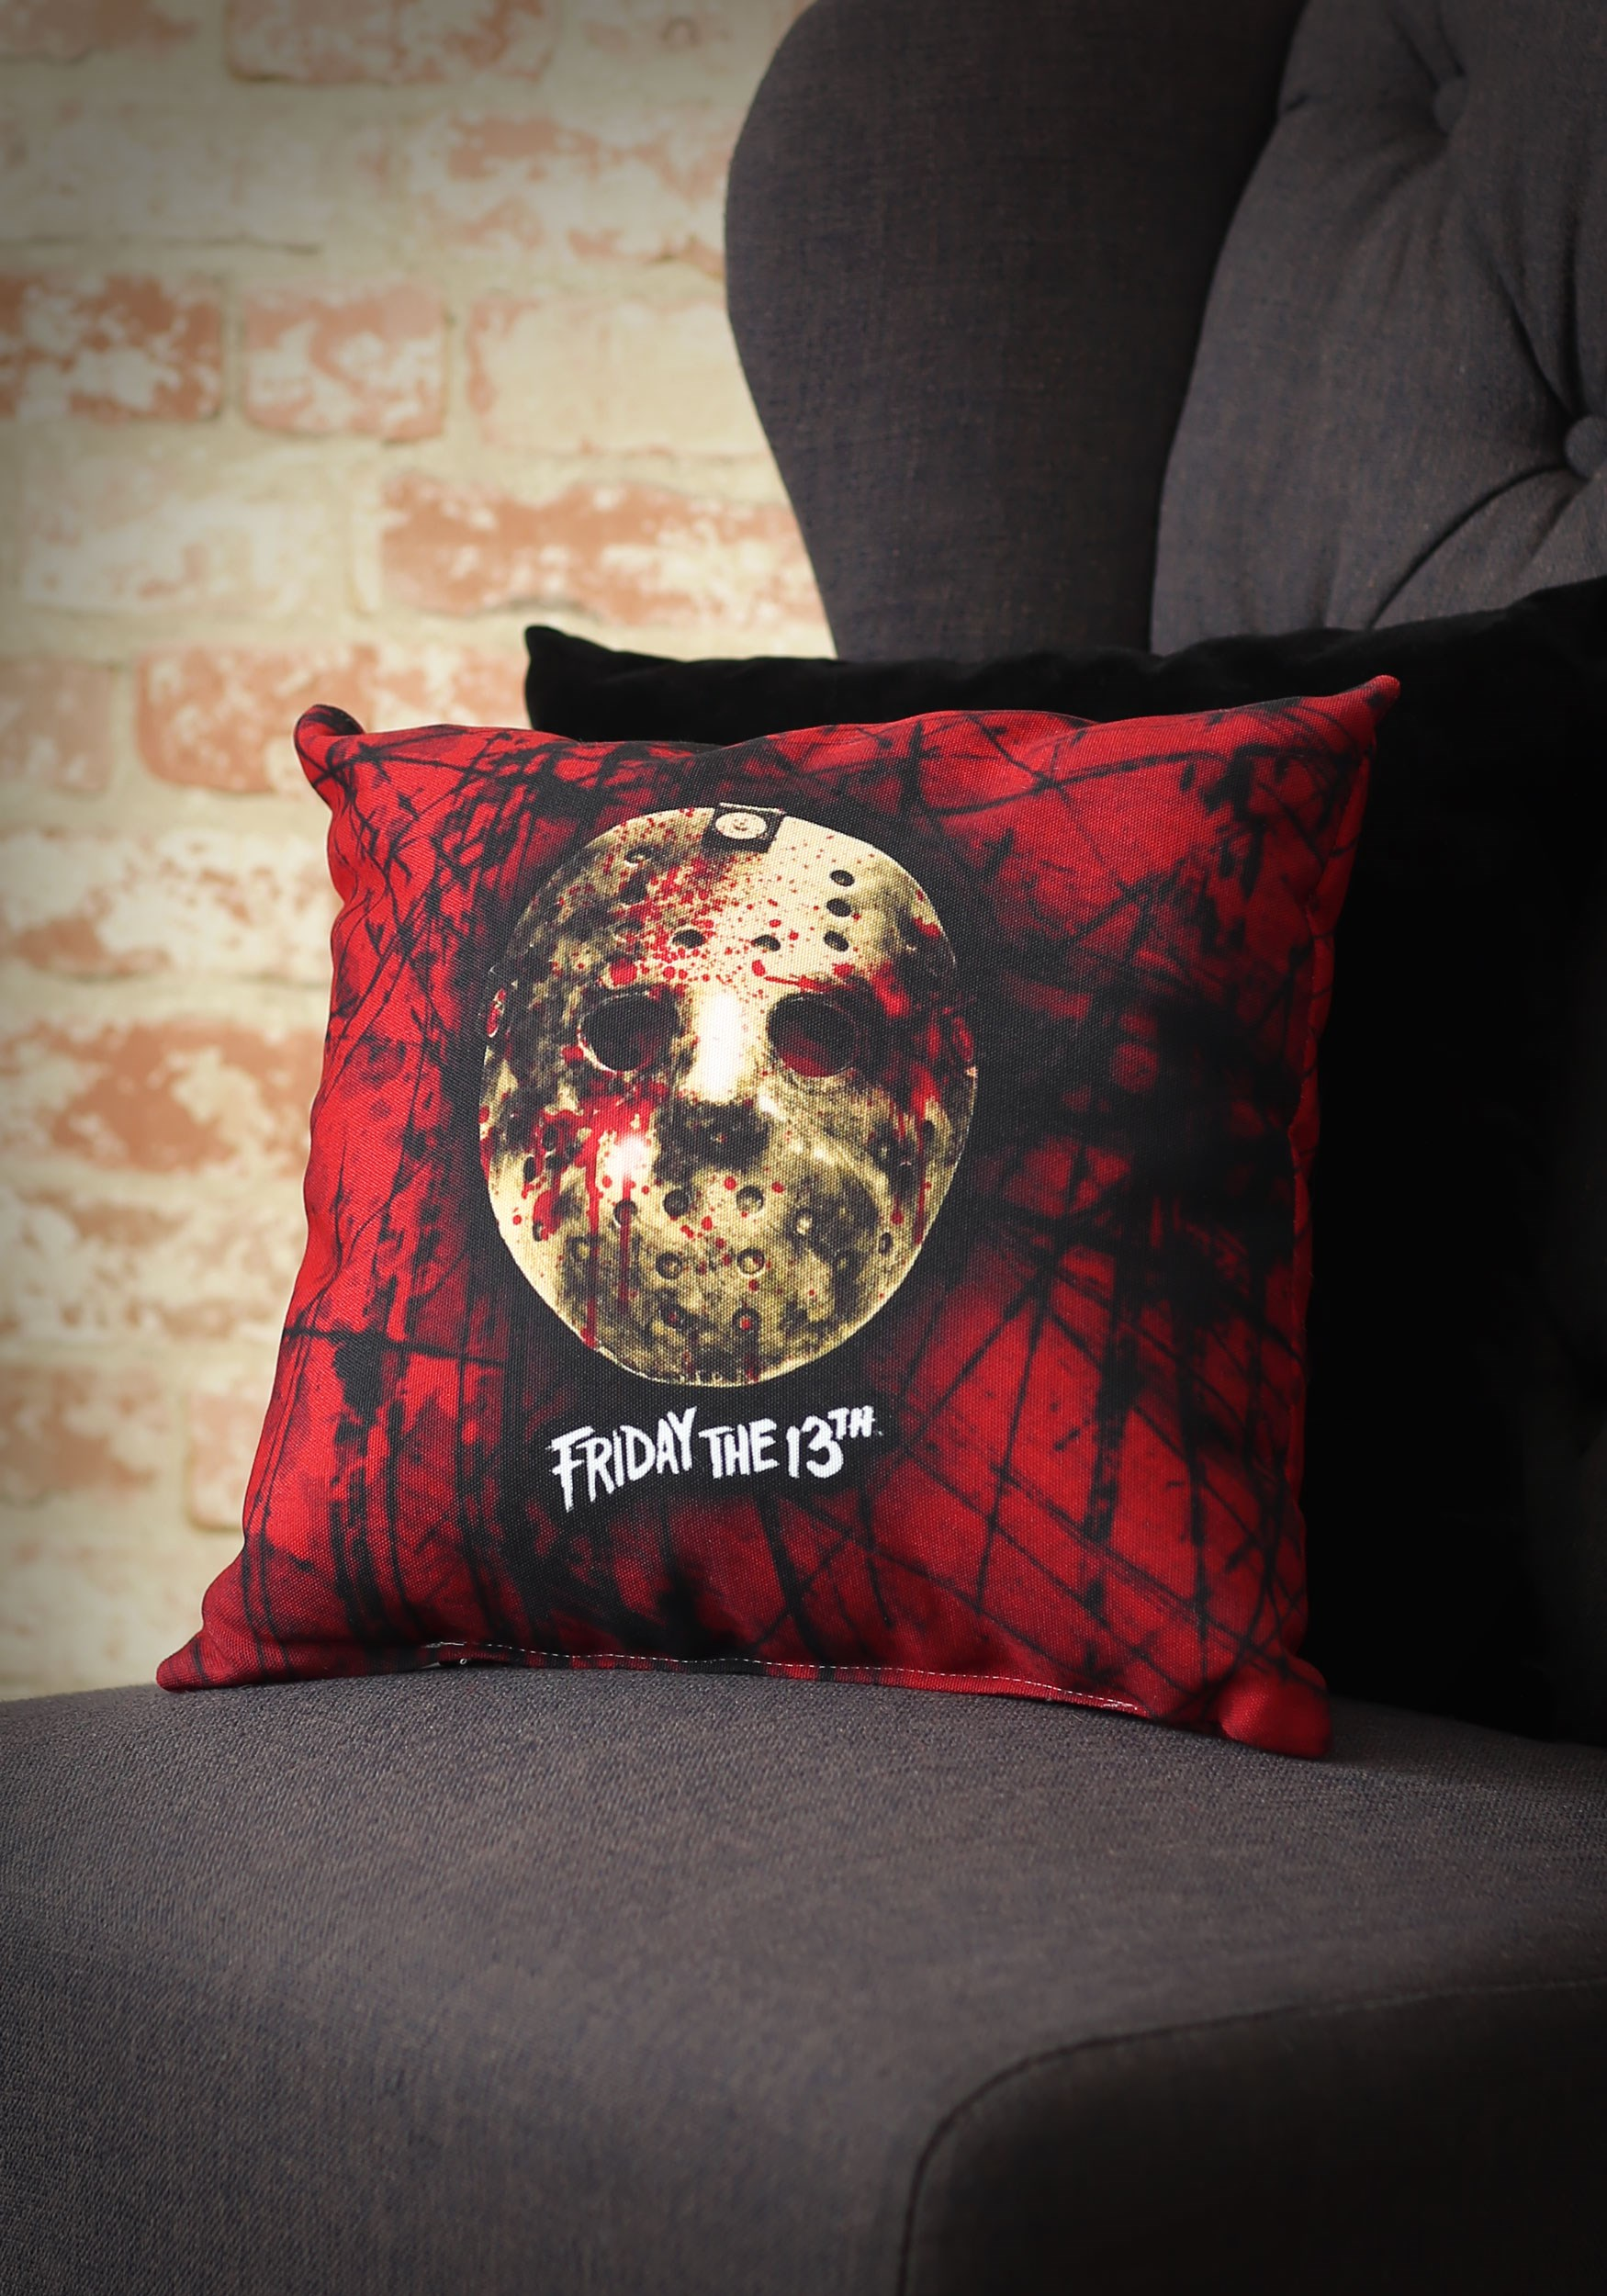 Friday the 13th Bloody Jason Mask 14